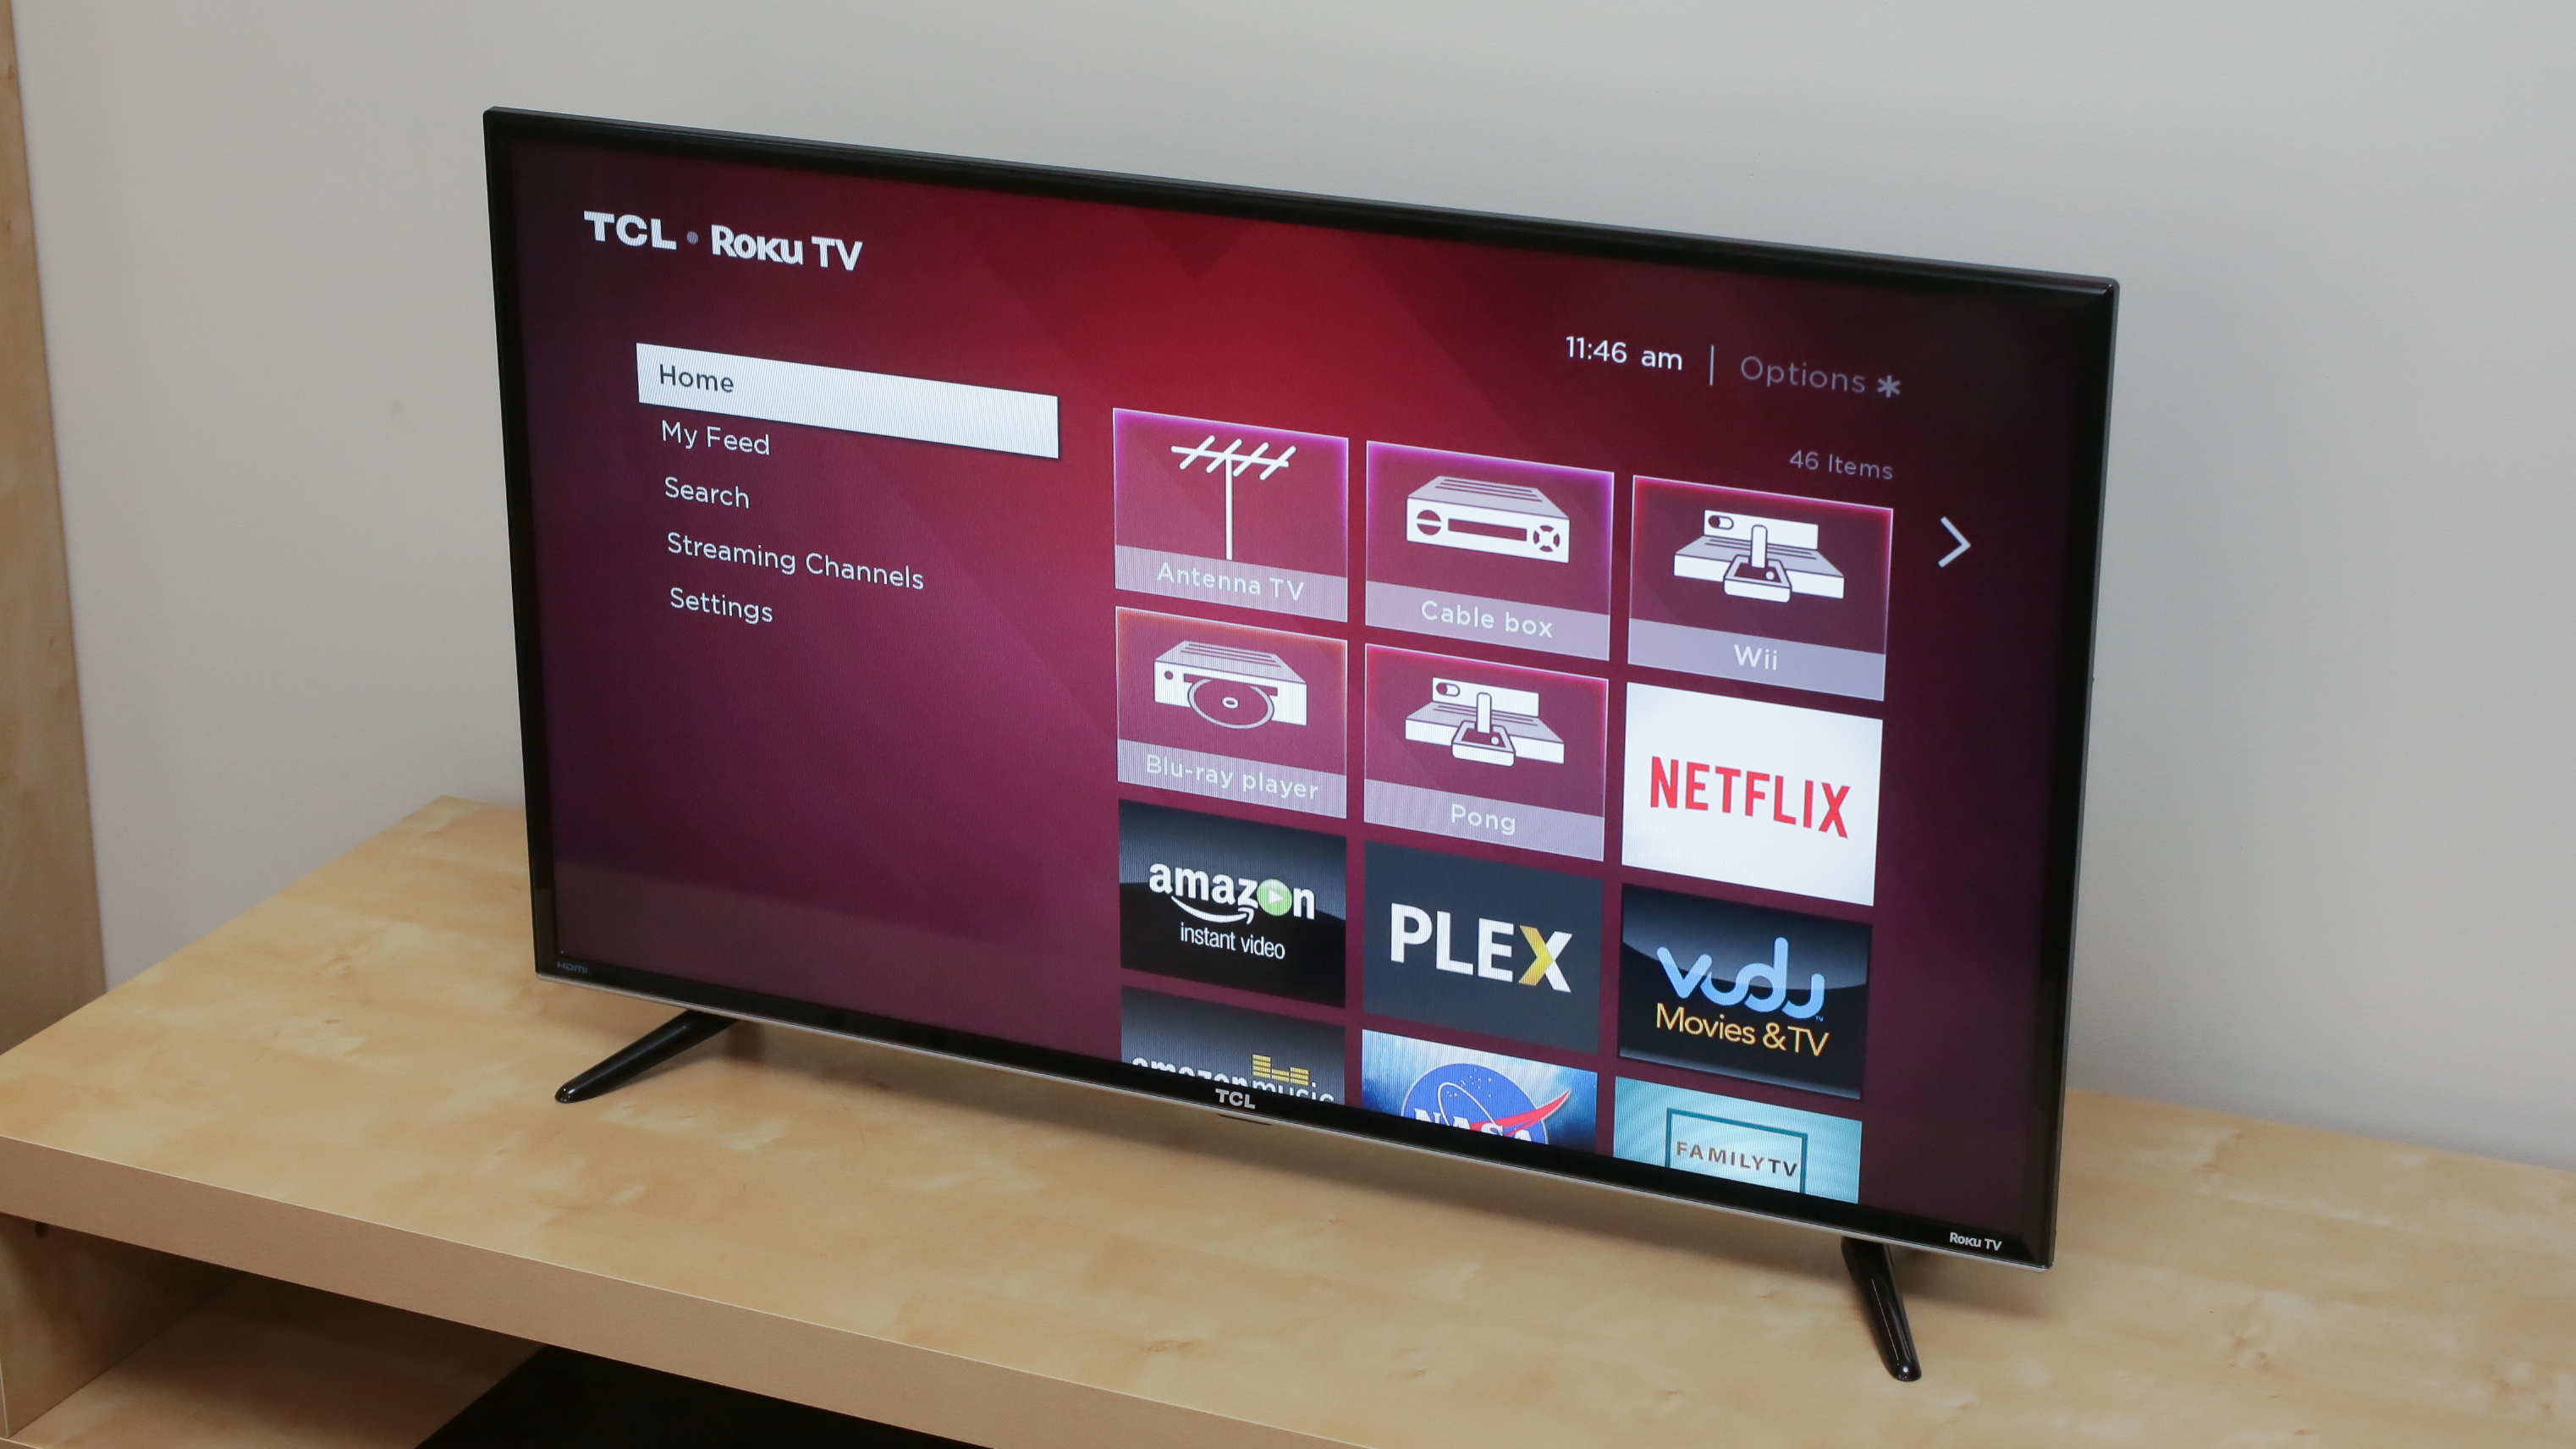 tcl-s3800-series-roku-tv-2015-10.jpg